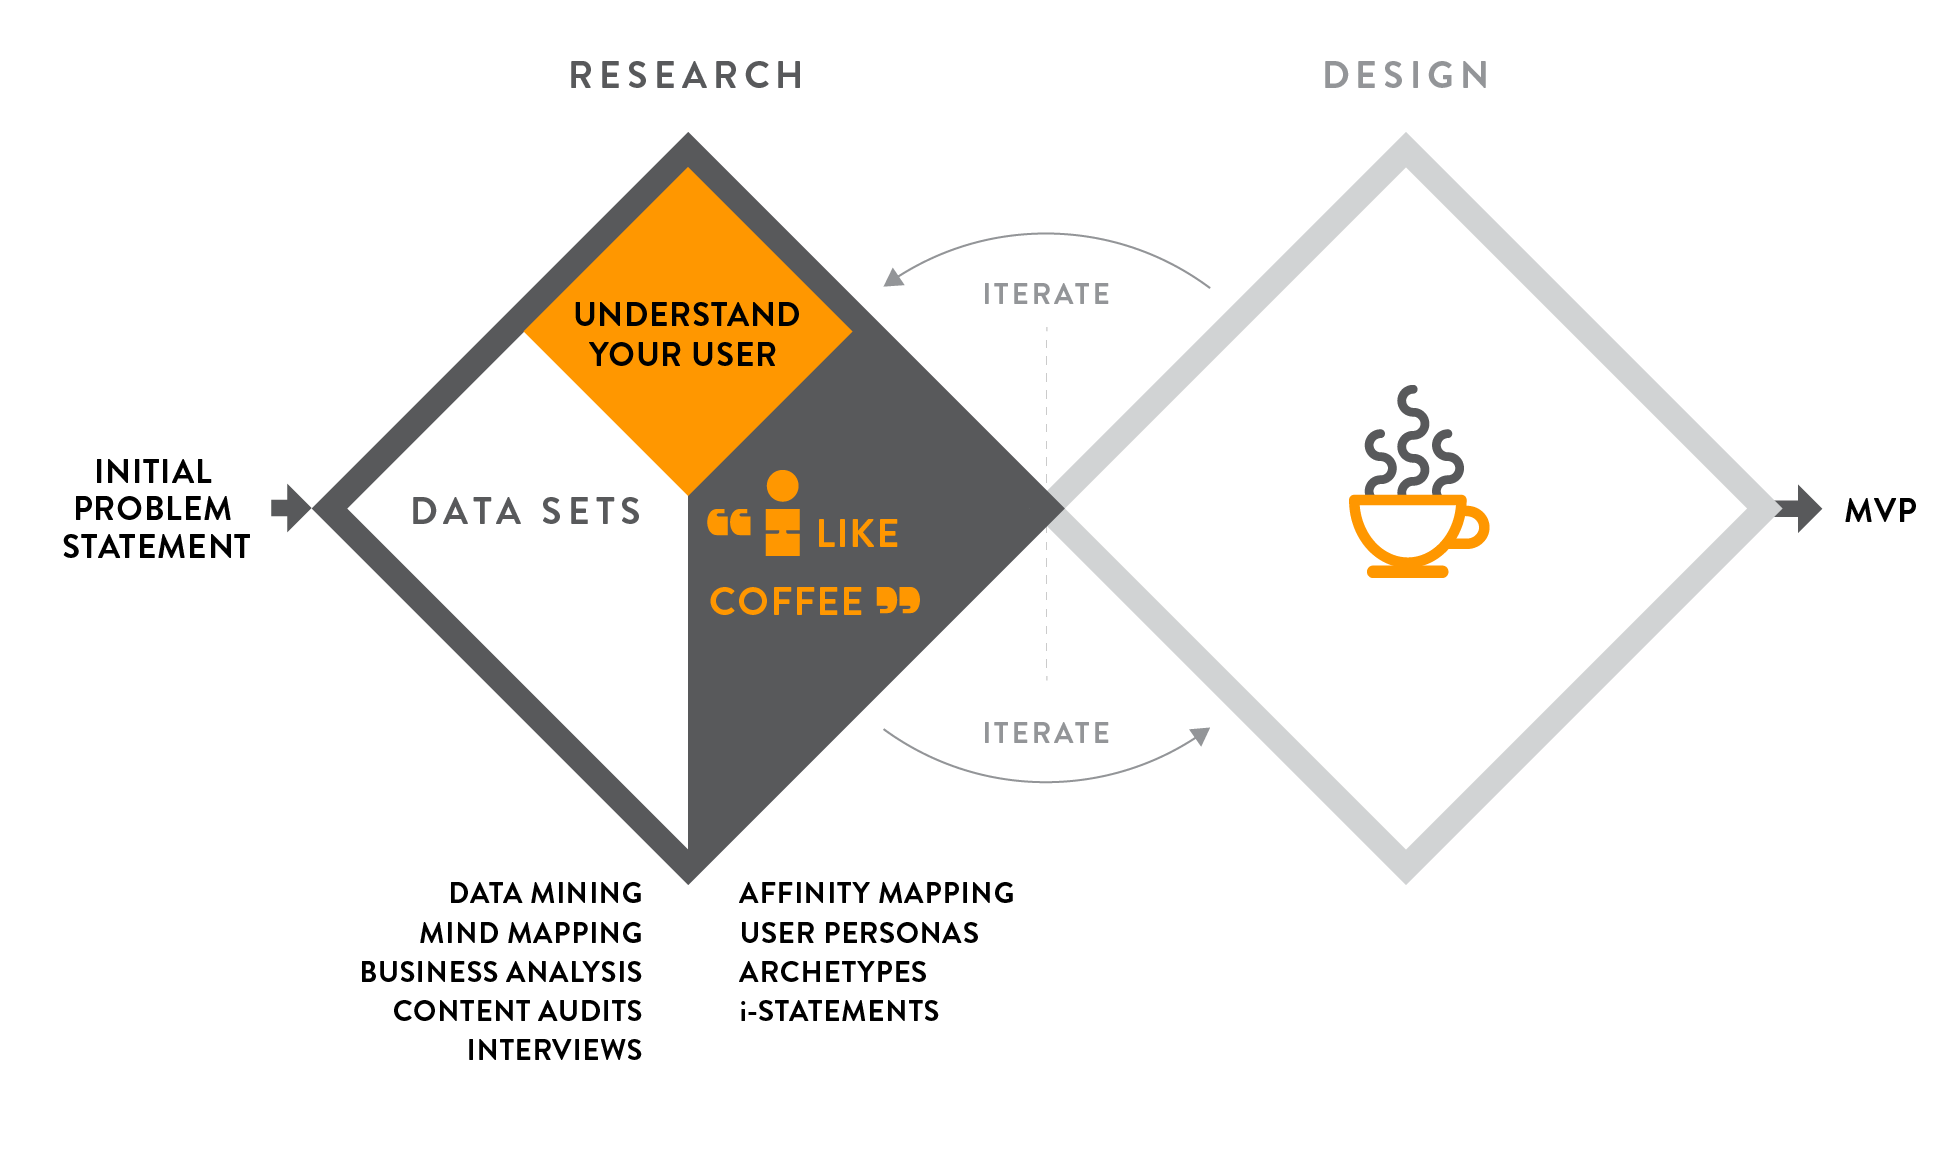 A diagram based on to diamond-shaped rectangles that illustrates a simplified Double Diamond UX process overview. The left hand rectangle shows the research phase, and the right hand rectangle shows the design phase. Multiple tools are available during the research phase to gather, analyze, and define data. i-statements are a tool to narrate your user personas. Design follows research, thus, the design can be executed to produce a more specific MVP based on research data.